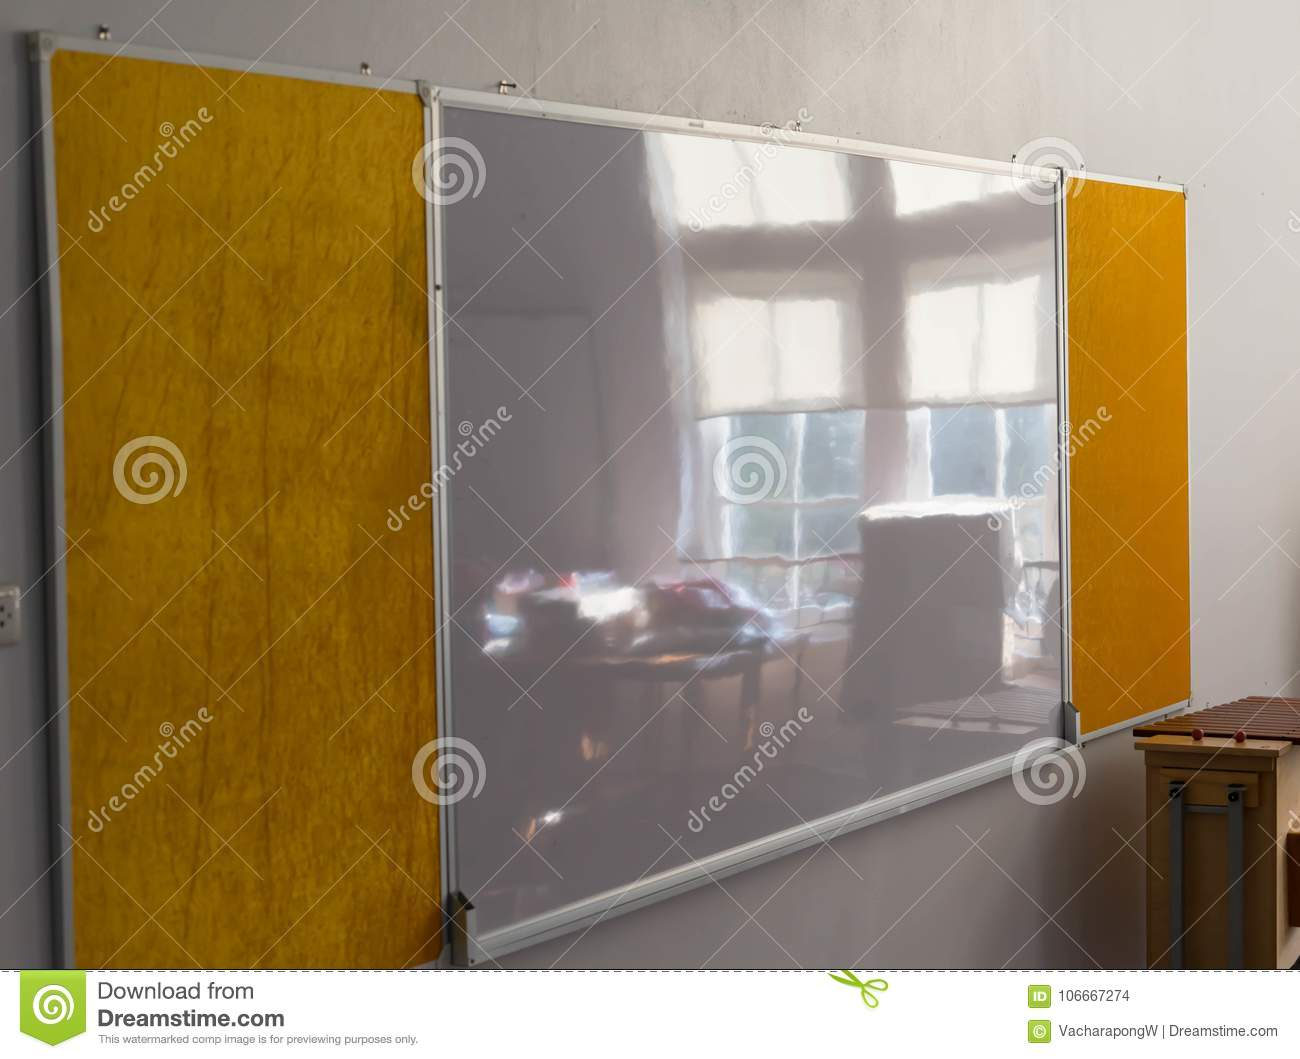 Whiteboard at wall with beside window reflect